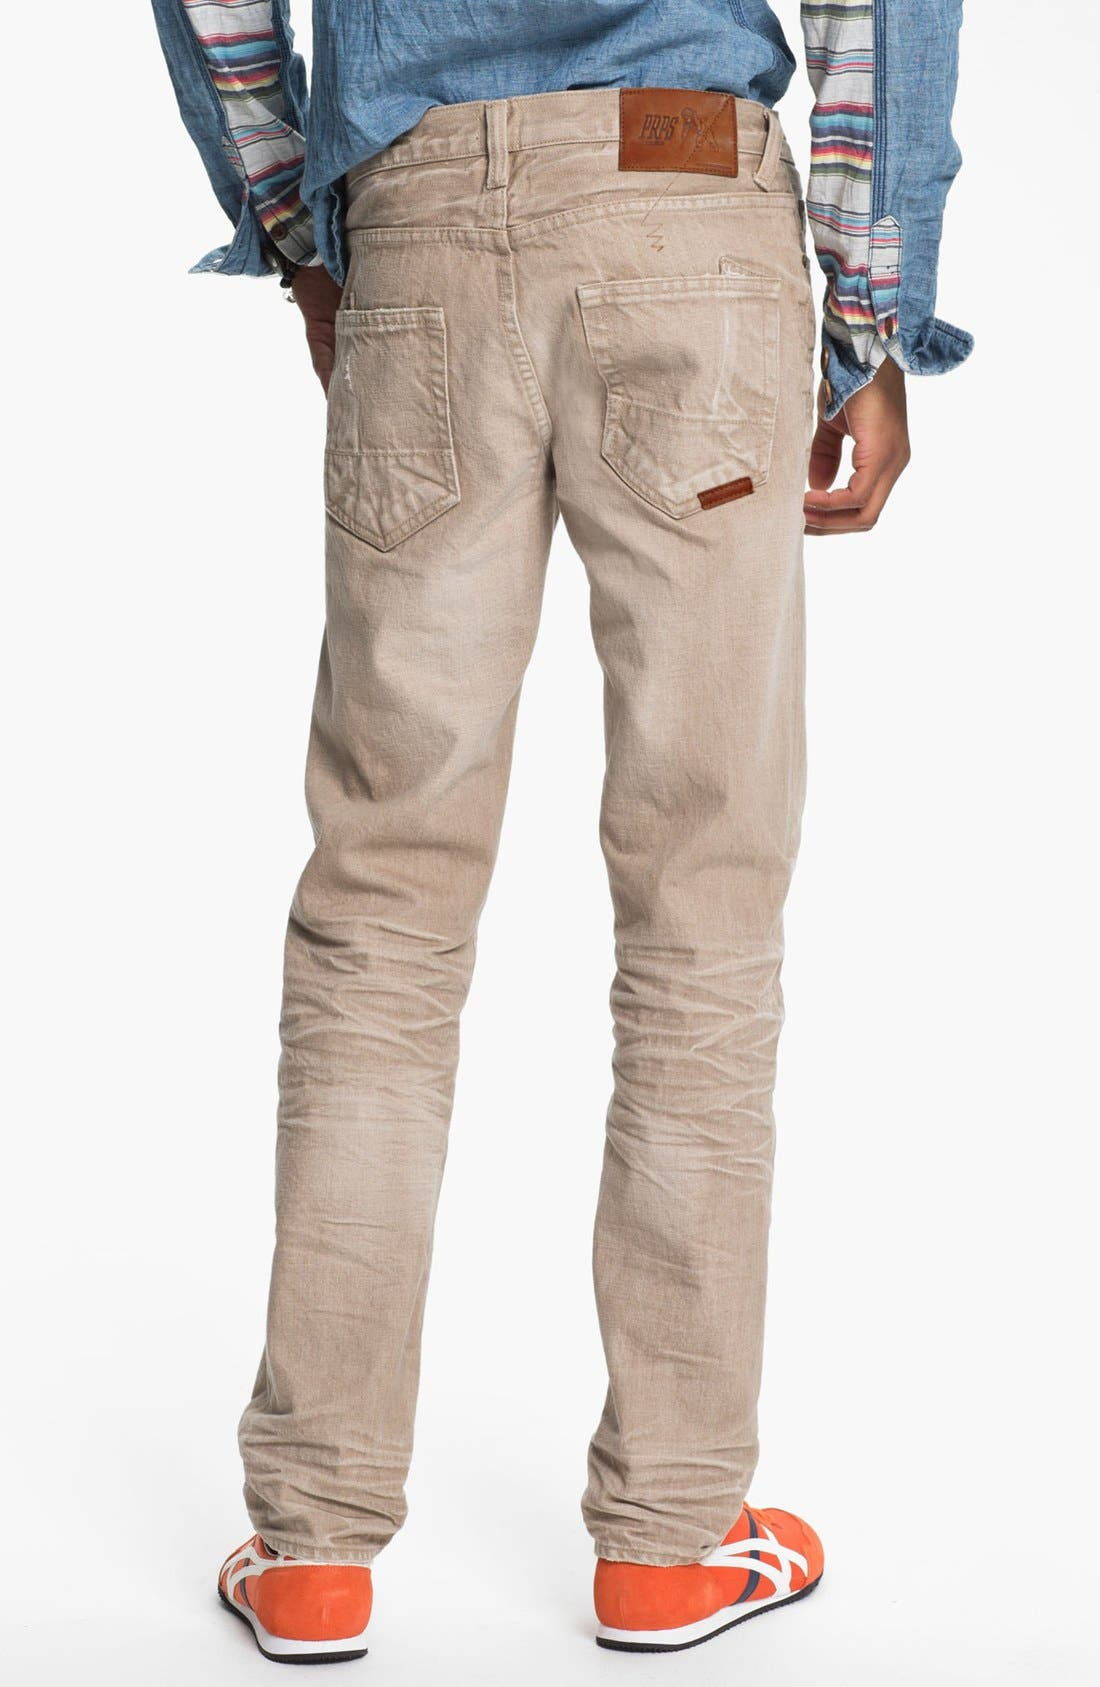 Alternate Image 1 Selected - PRPS 'Vesta Rambler' Slim Fit Jeans (Beige)